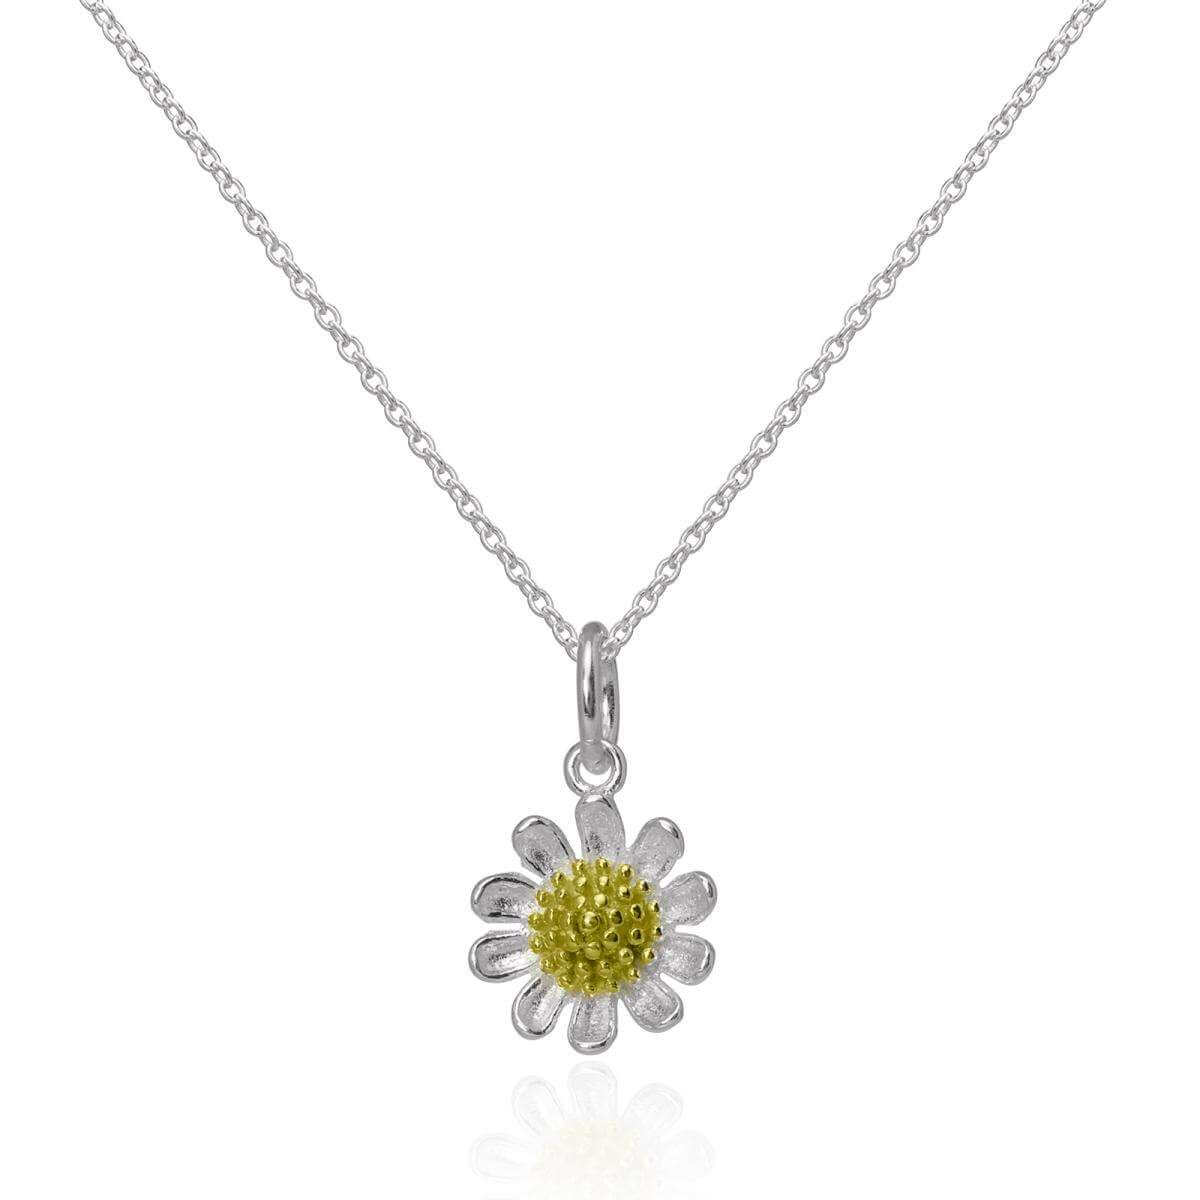 Gold Dipped & Sterling Silver Daisy Flower Pendant on Chain 16 - 22 Inches